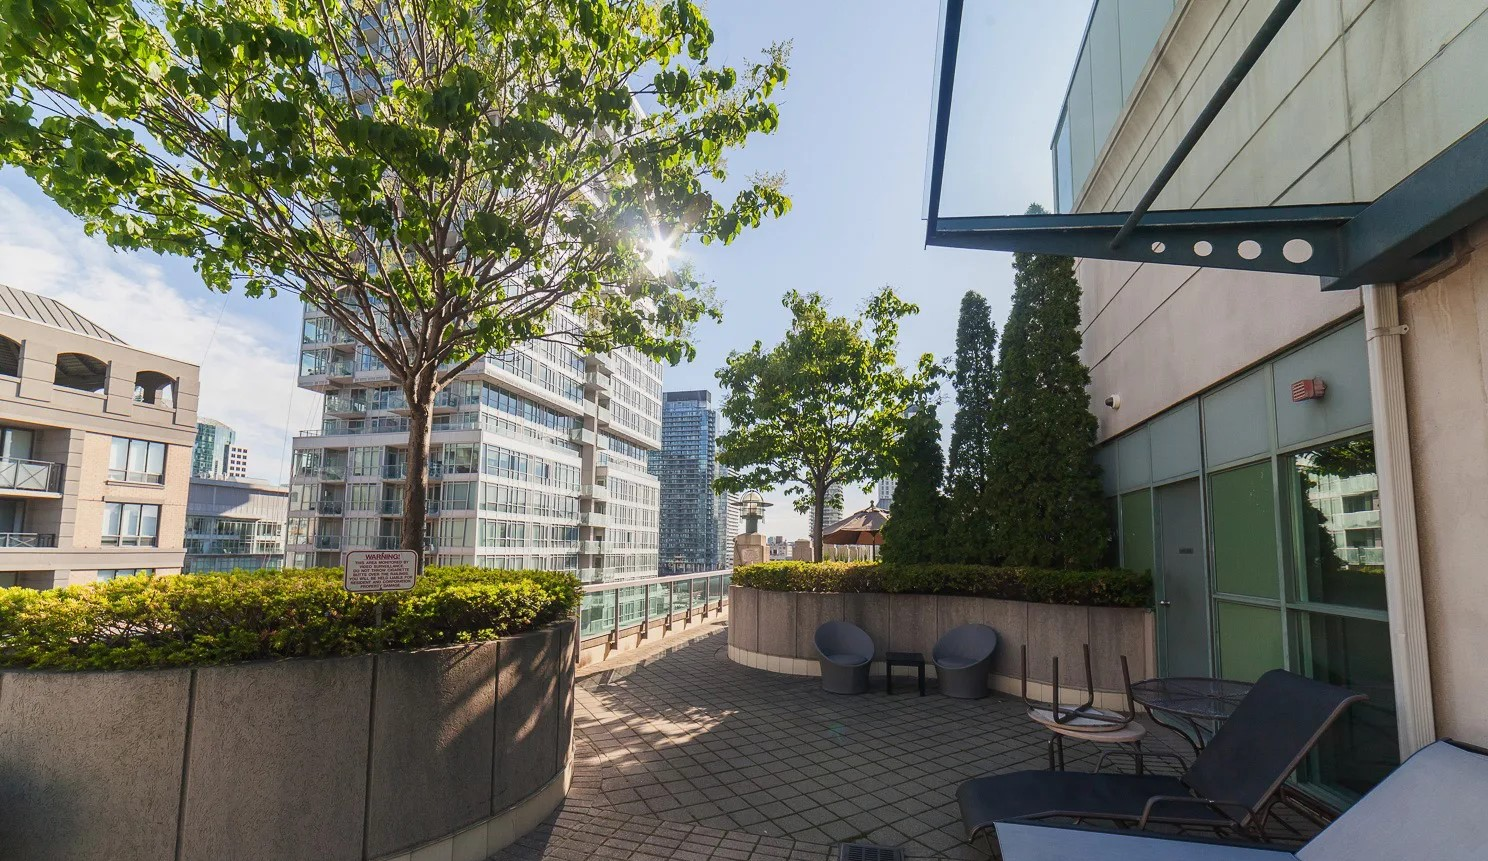 168 Simcoe St's rooftop deck with chaise lounges, shrubbery and view of downtown Toronto.